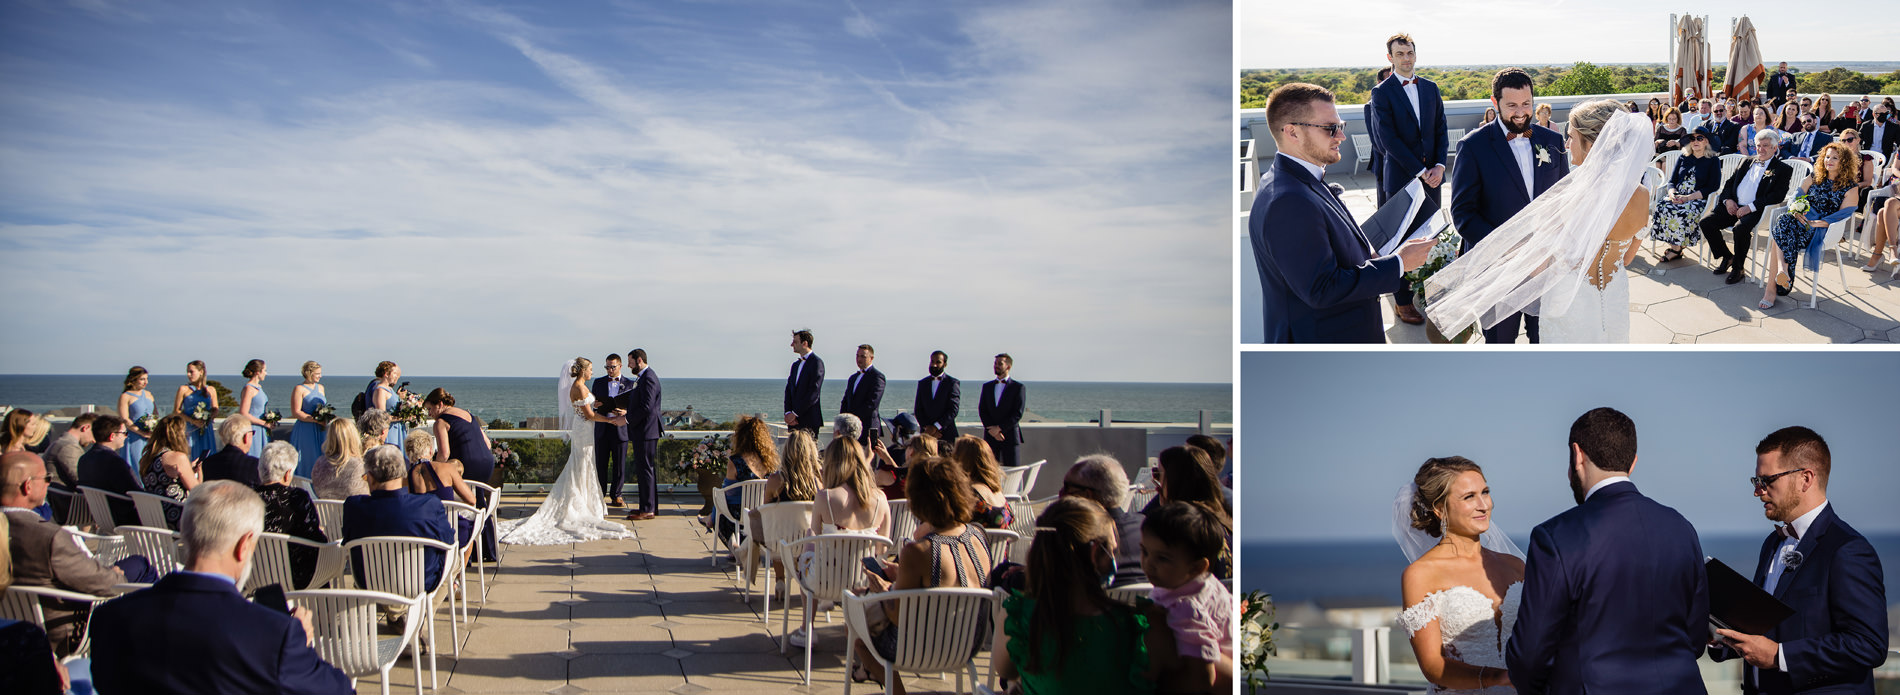 The Rooftoop Terrace Ceremony Venue at Wild Dunes Sweetgrass Inn